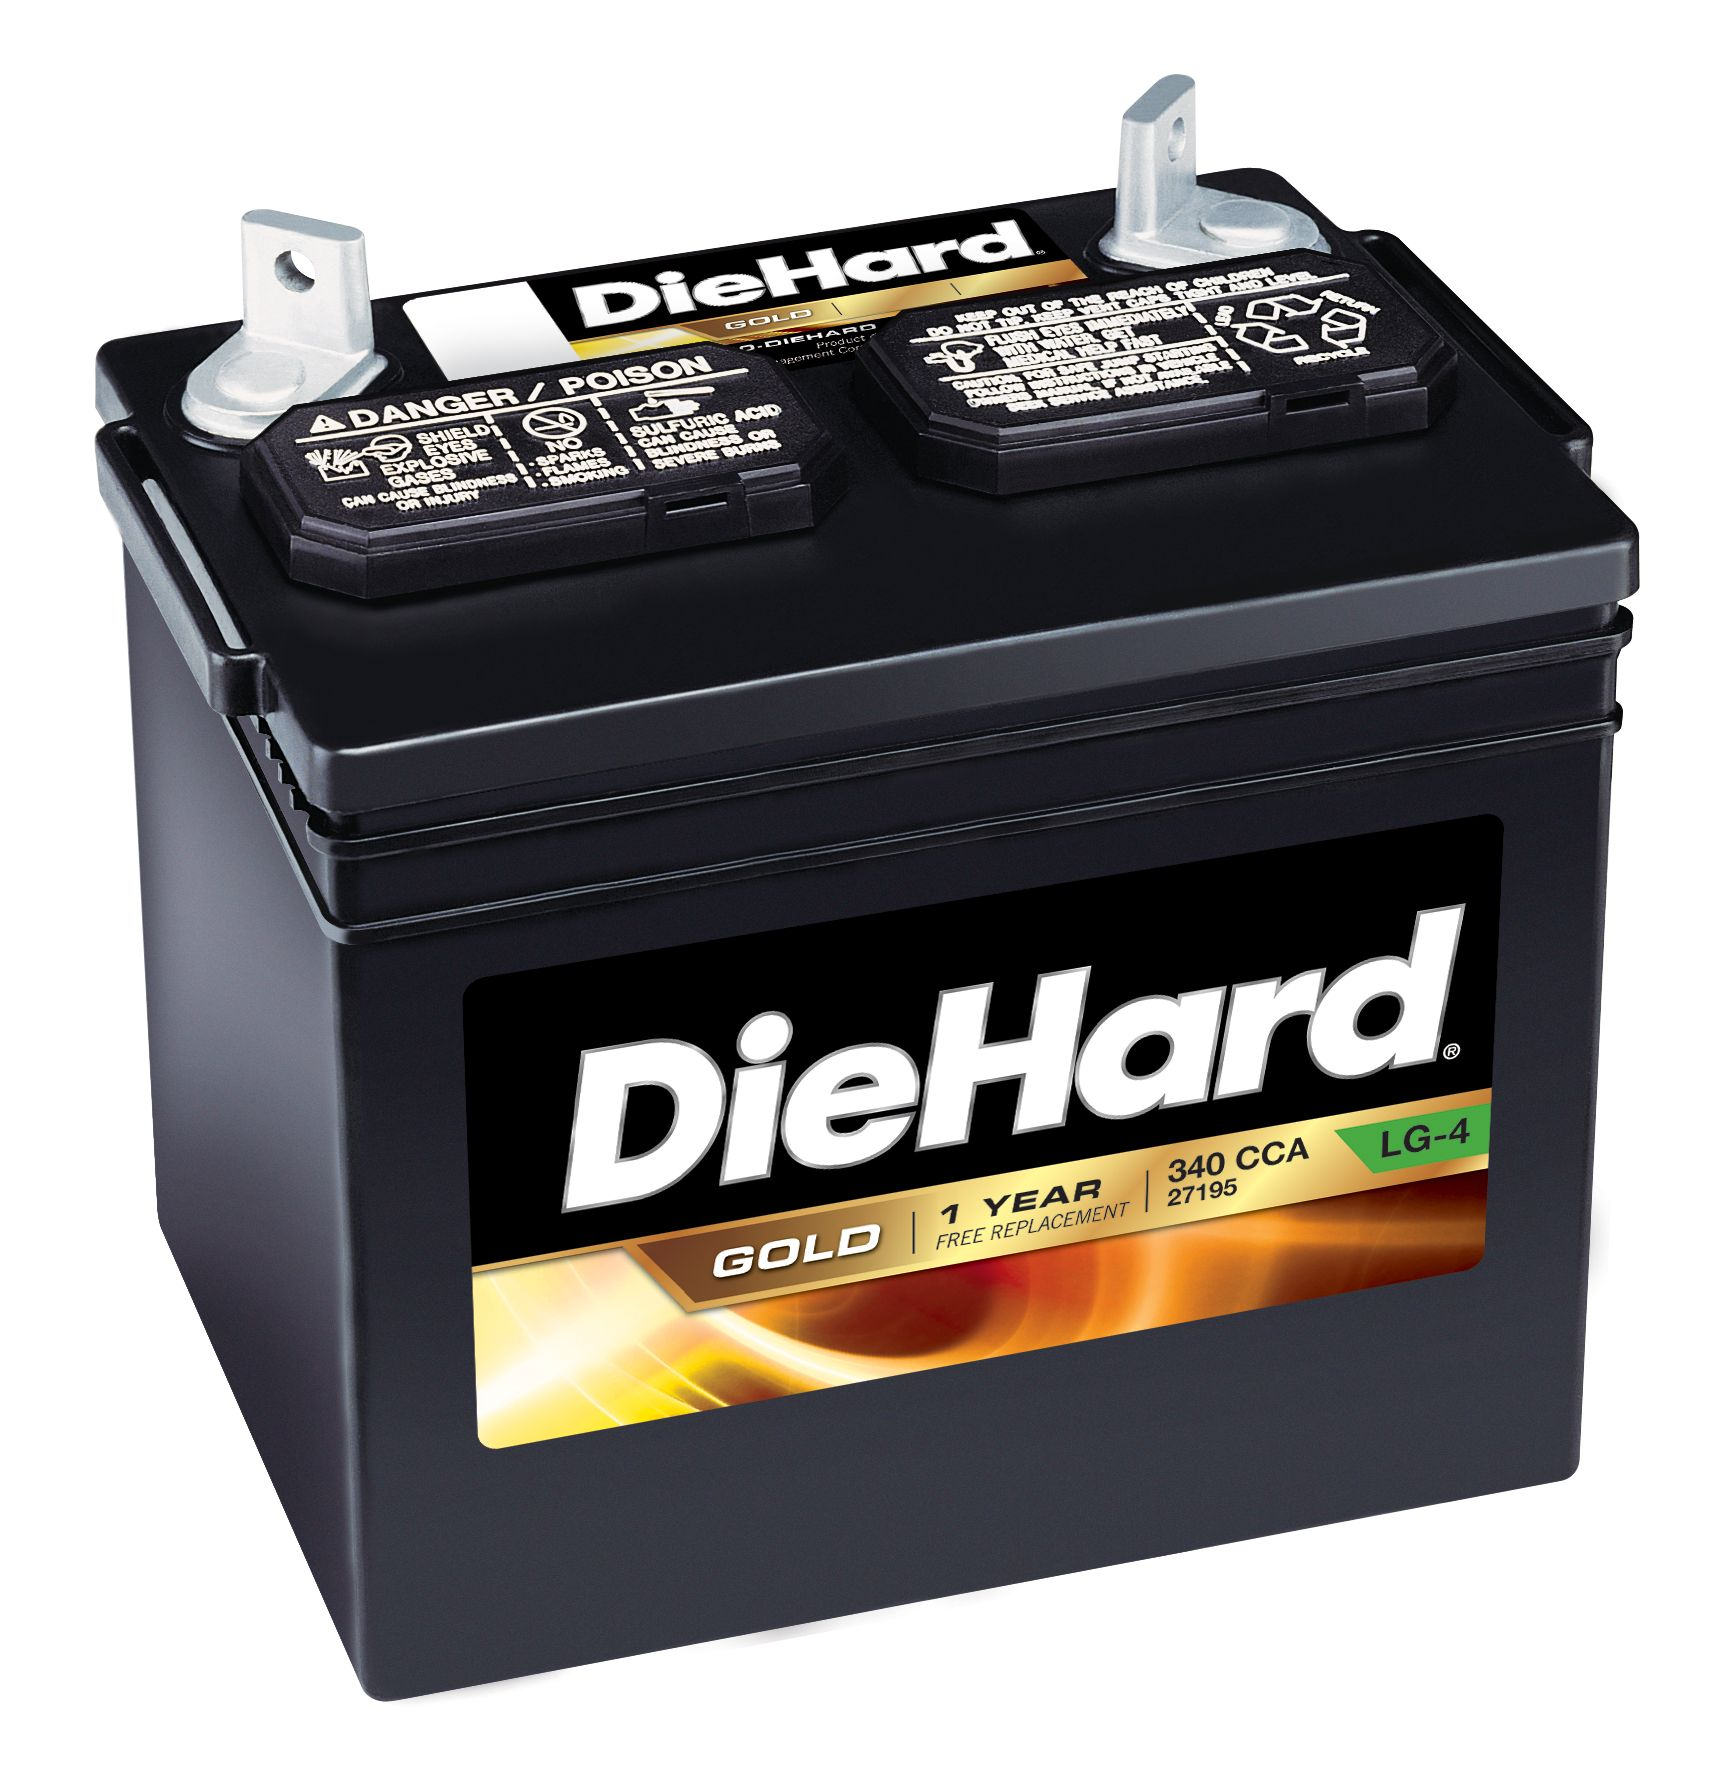 DieHard  Gold Garden Tractor Battery- Group Sizes U1R (Price with